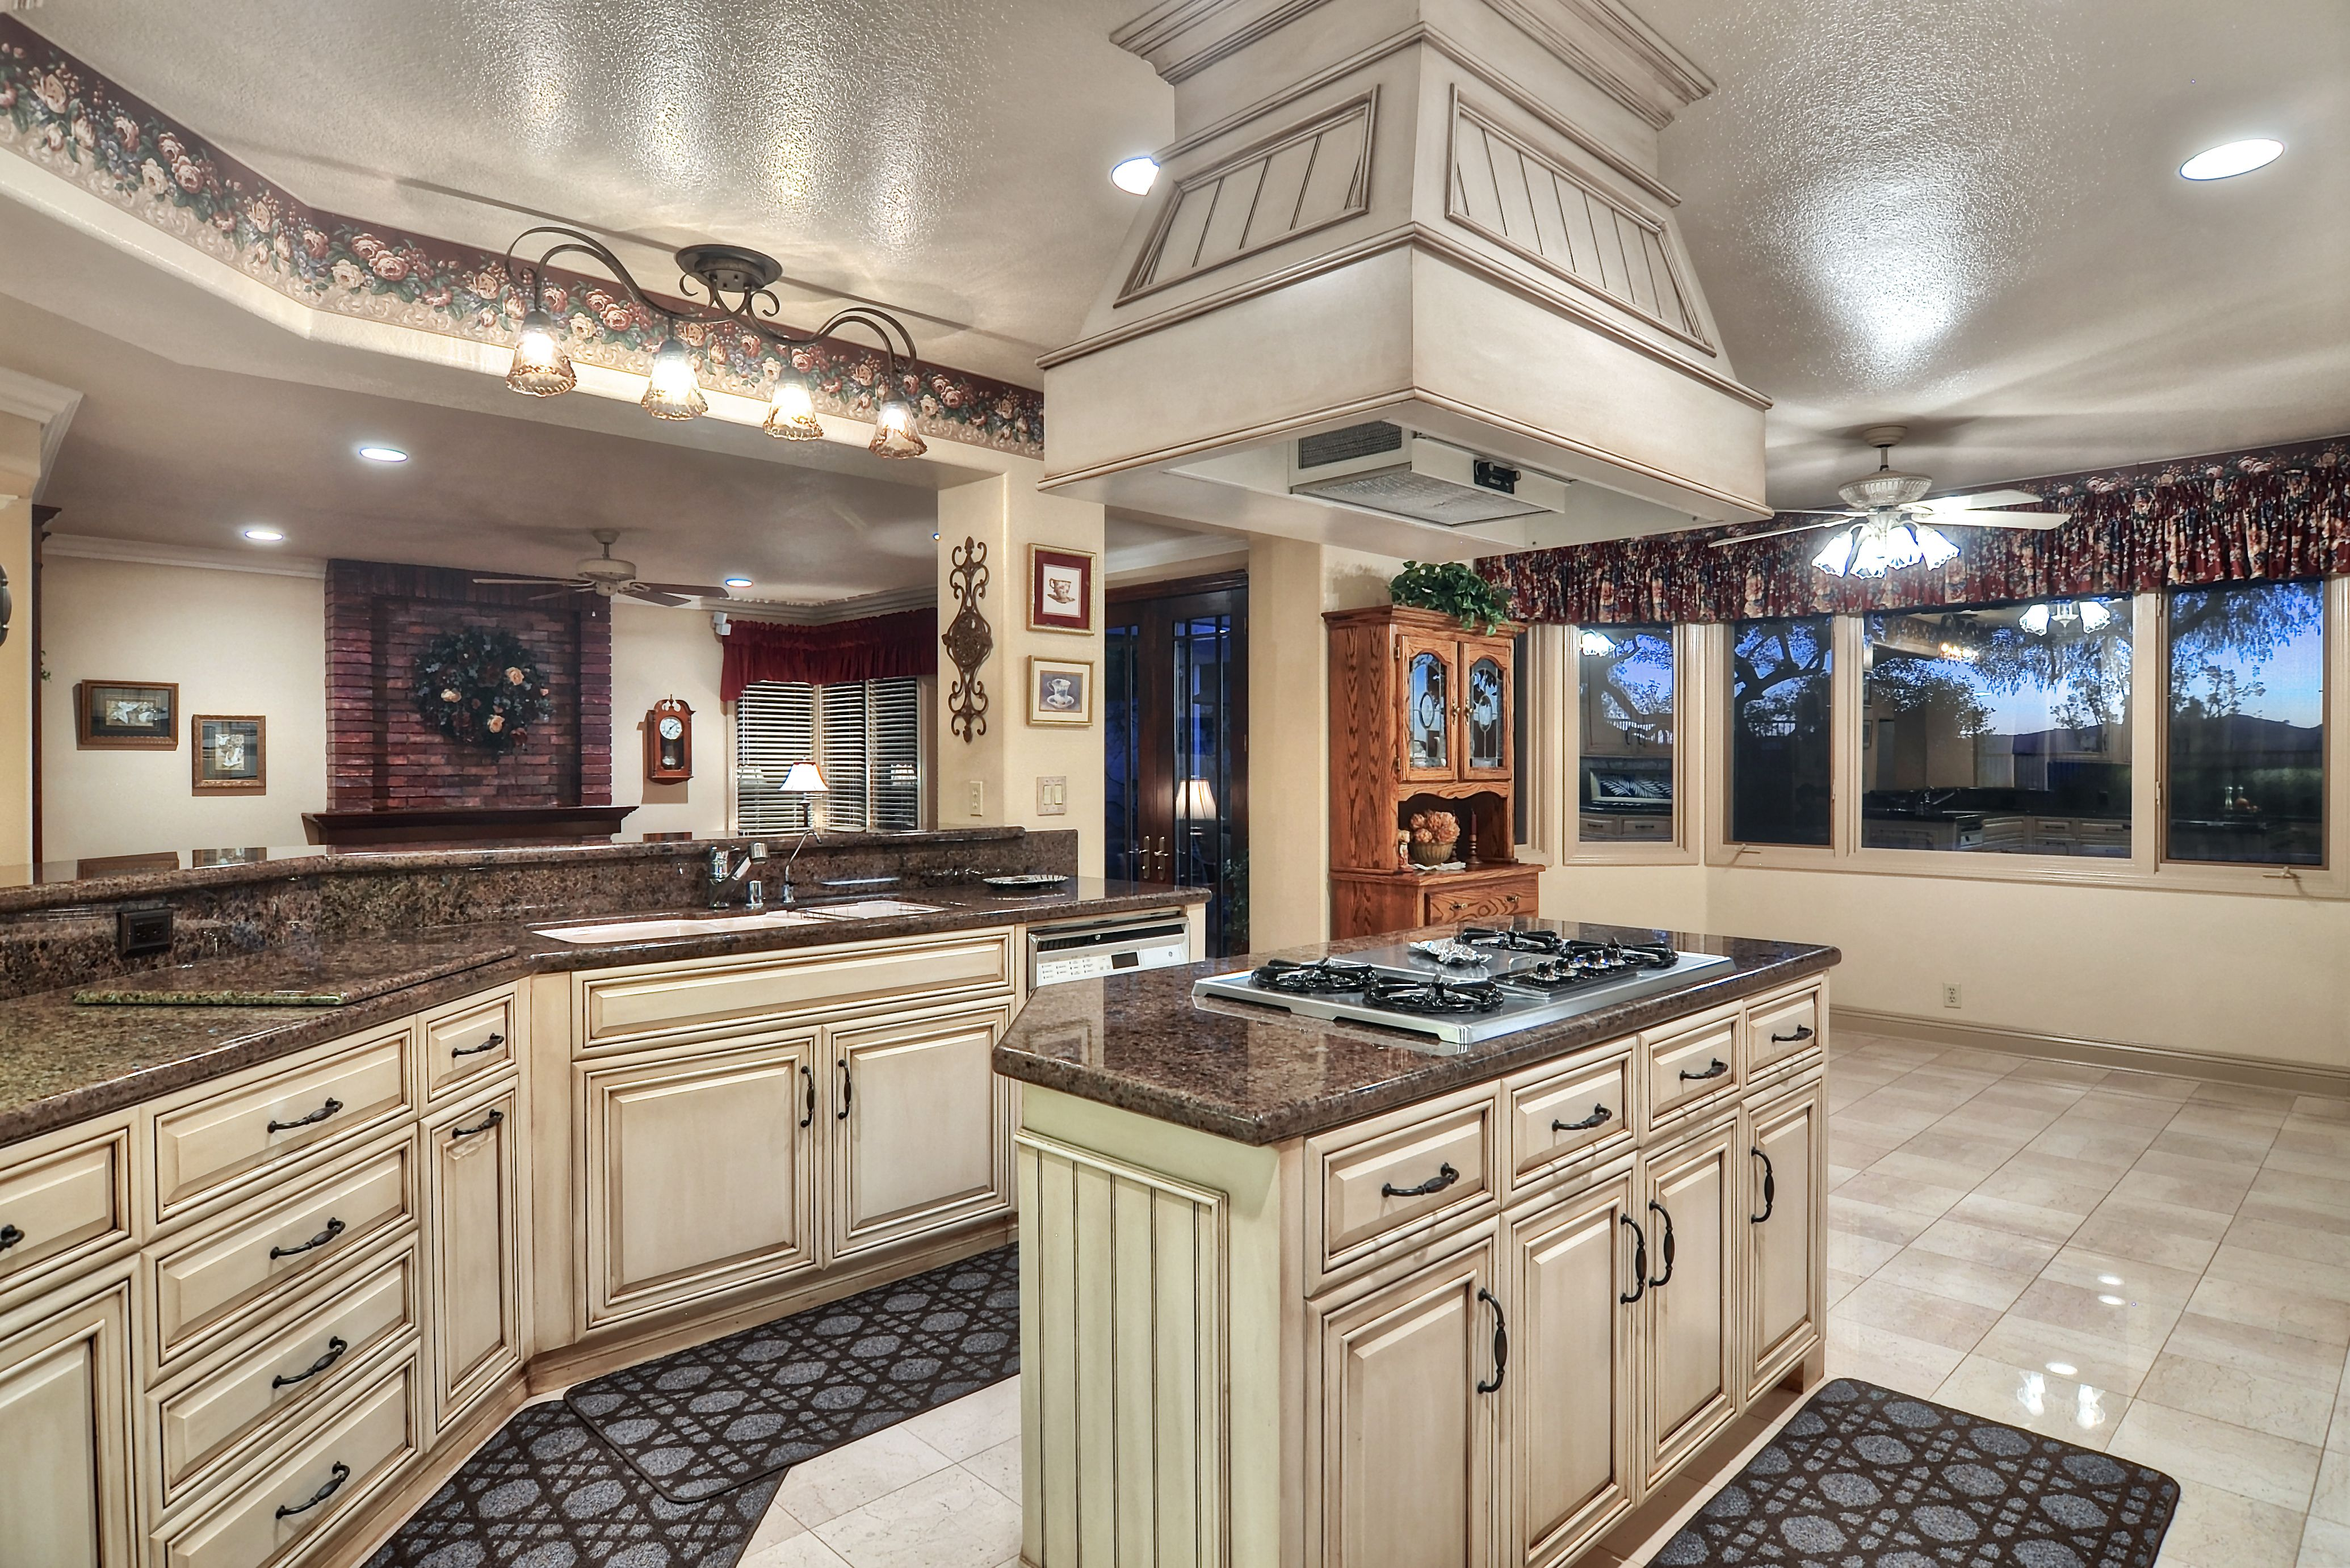 Light Cabinets And Dark Counter Tops For The Kitchen. Love The Look Of That  Island